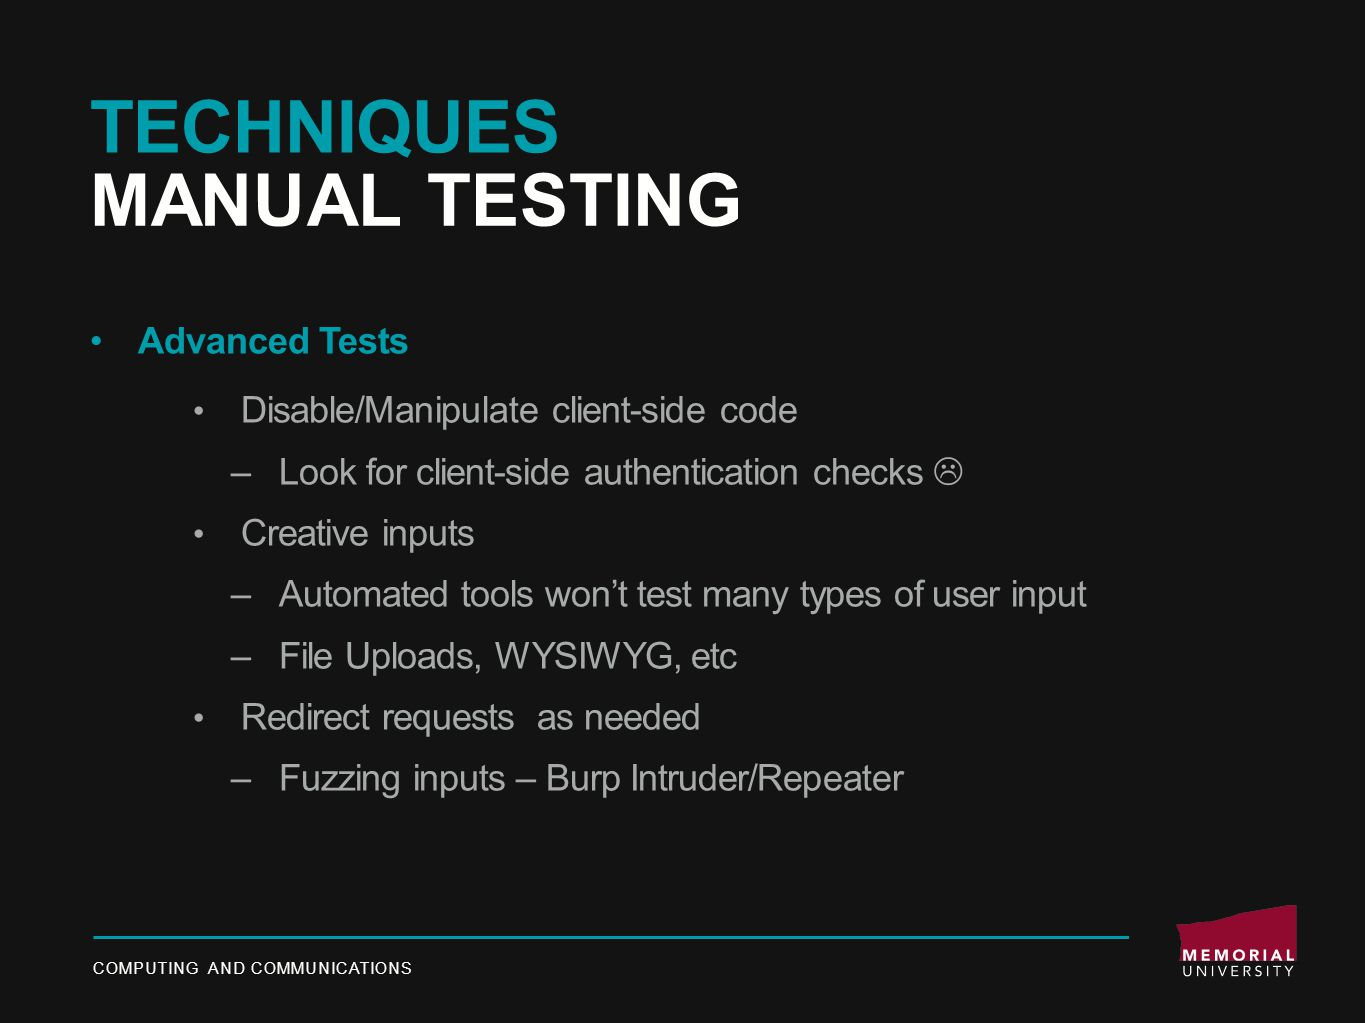 TECHNIQUES MANUAL TESTING Advanced Tests Disable/Manipulate client-side code –Look for client-side authentication checks  Creative inputs –Automated tools won't test many types of user input –File Uploads, WYSIWYG, etc Redirect requests as needed –Fuzzing inputs – Burp Intruder/Repeater COMPUTING AND COMMUNICATIONS